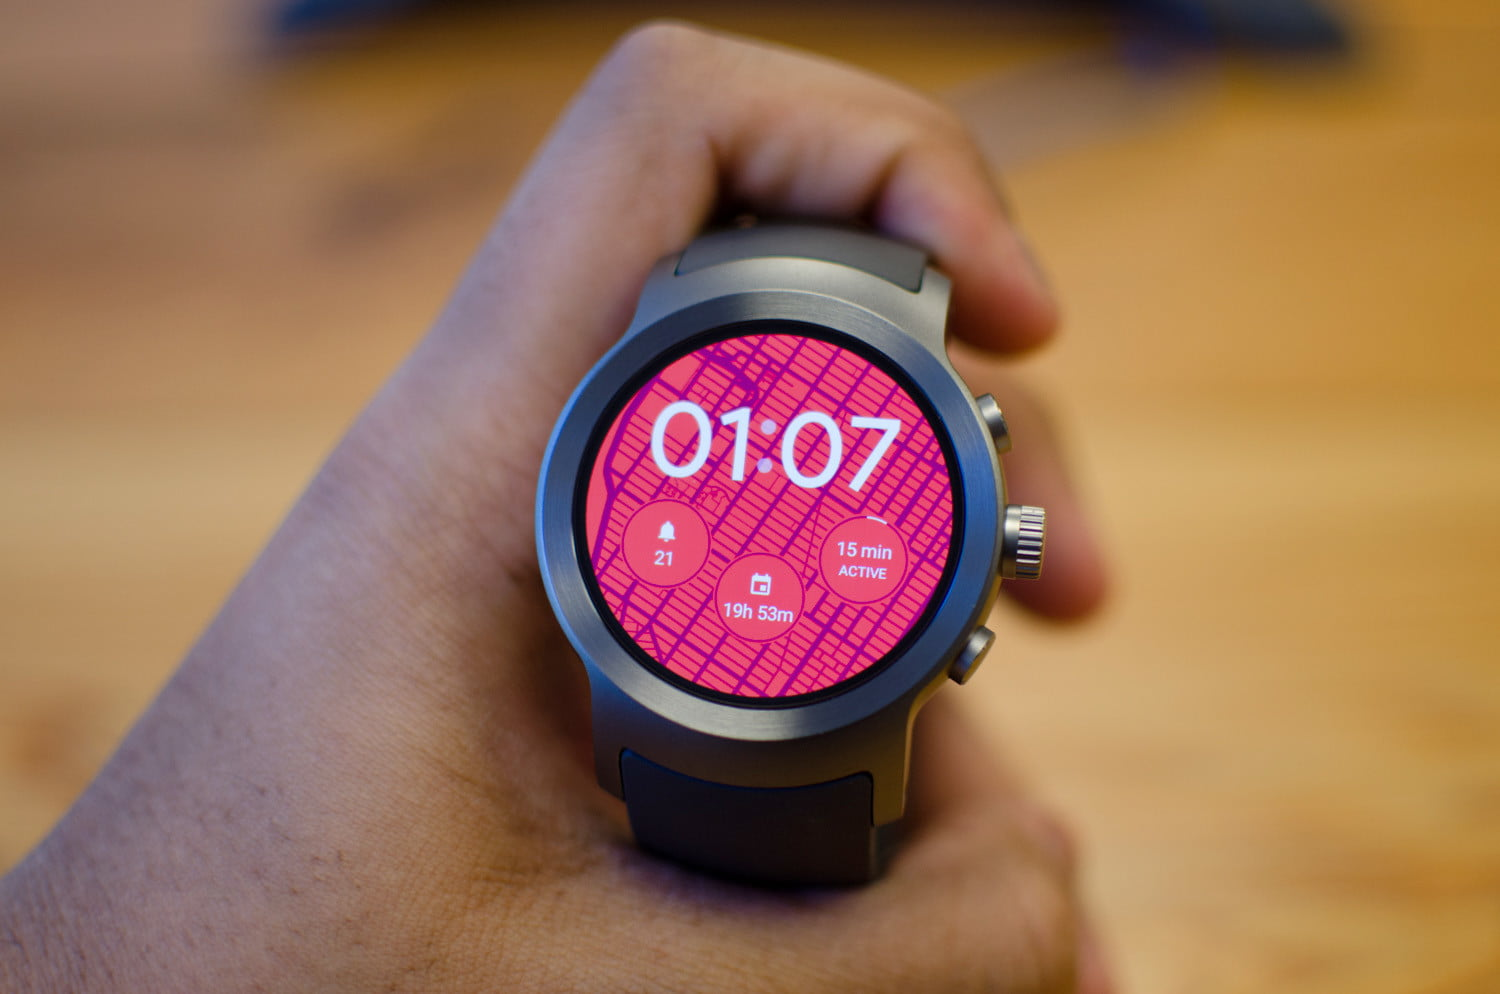 How To Use Googles Wear Os With An Android Or Ios Smartphone